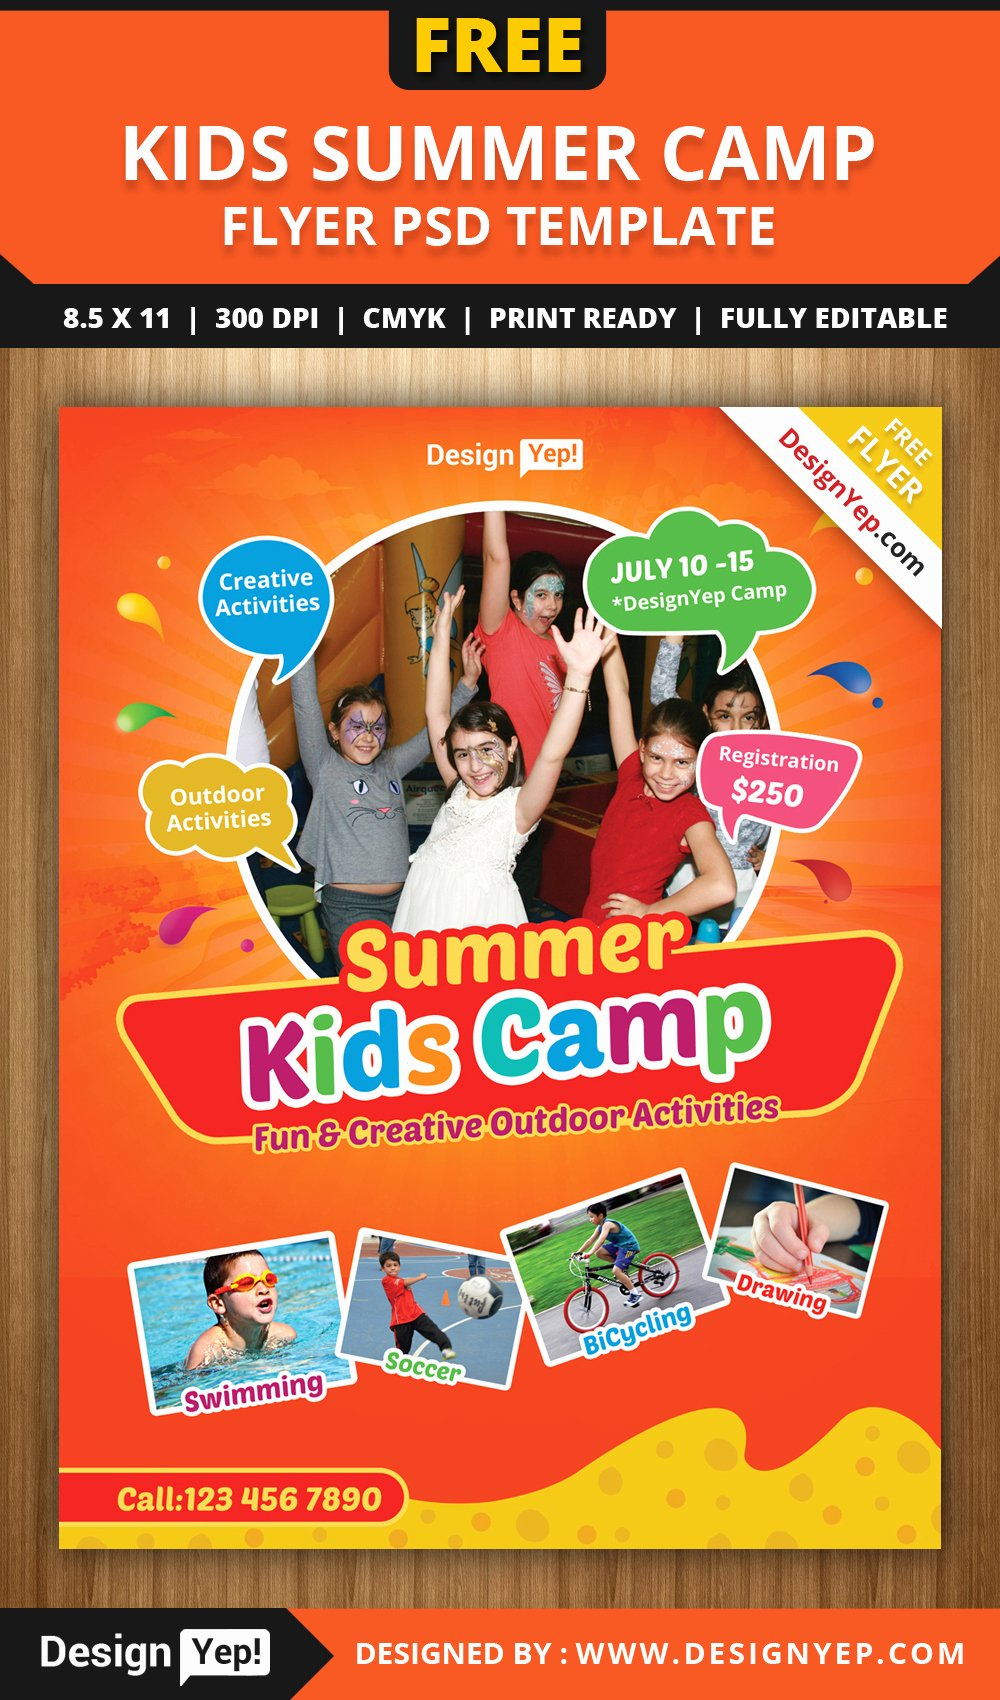 Free Kids Summer Camp Flyer Psd Template On Behance